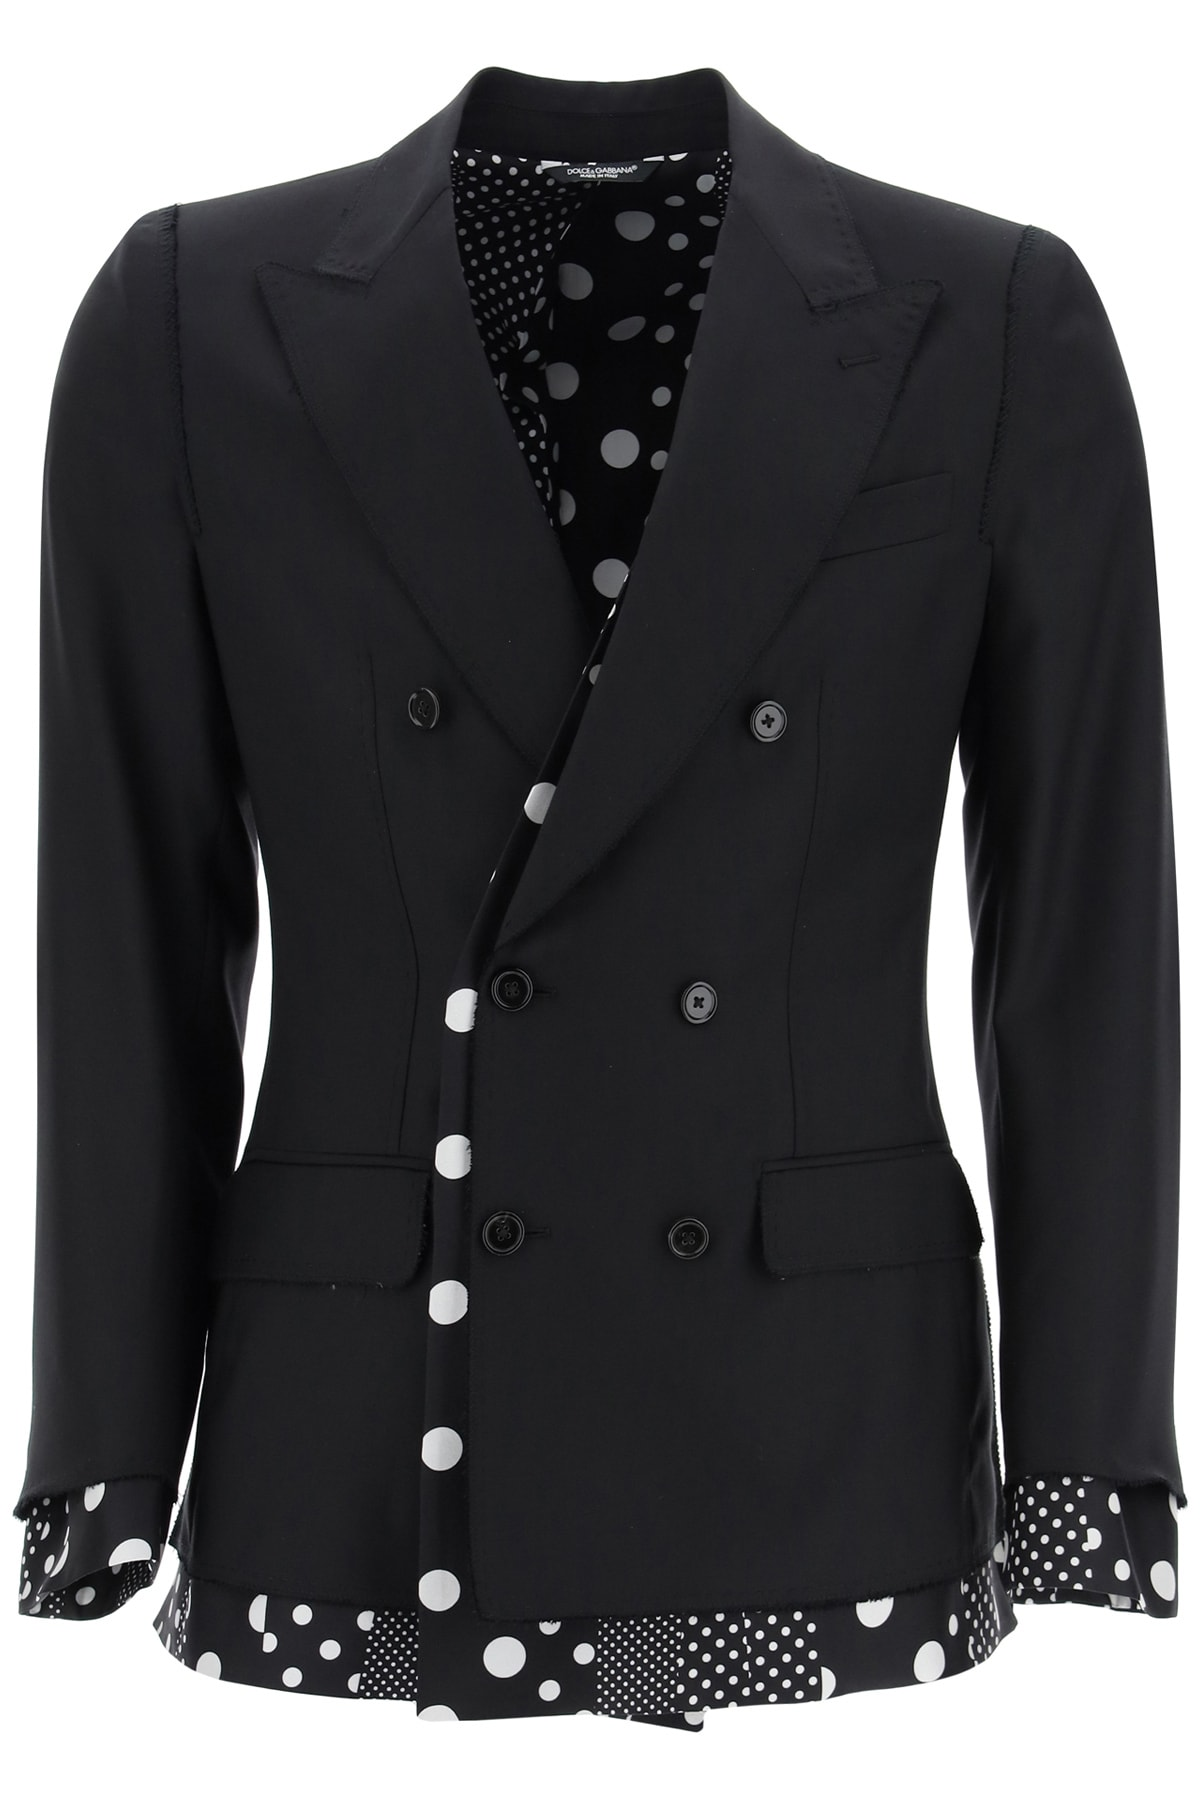 Dolce & Gabbana Blazers SICILIA DOUBLE-BREASTED JACKET